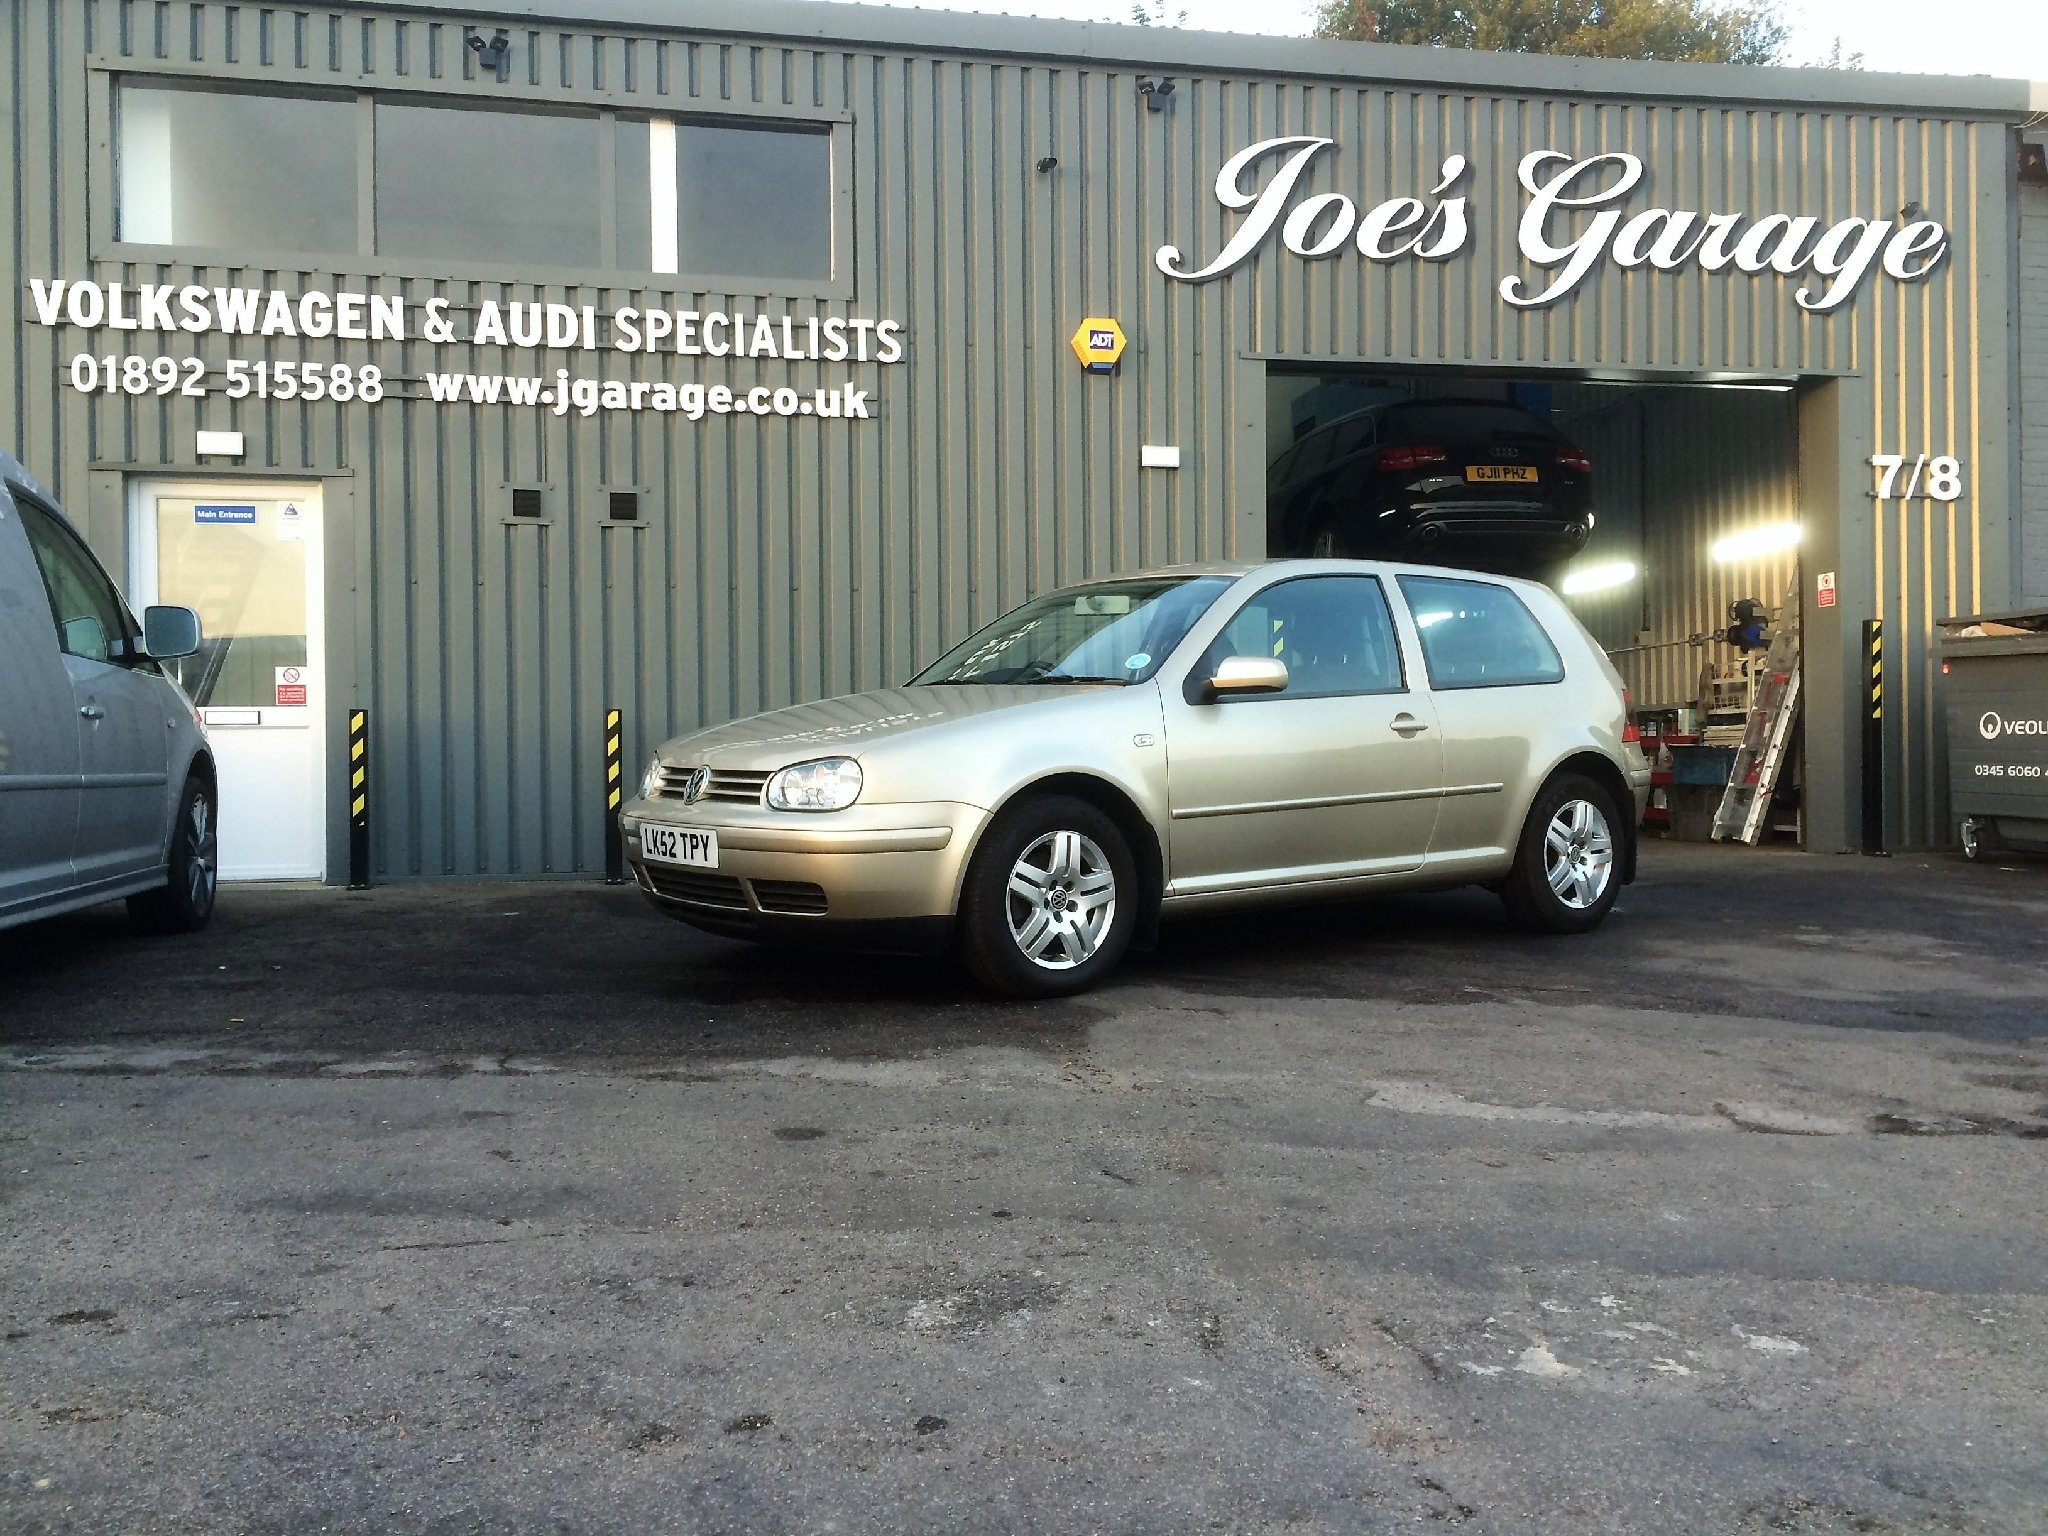 Joe 39 s garage volkswagen audi specialist motor vehicle for Garage volkswagen 92